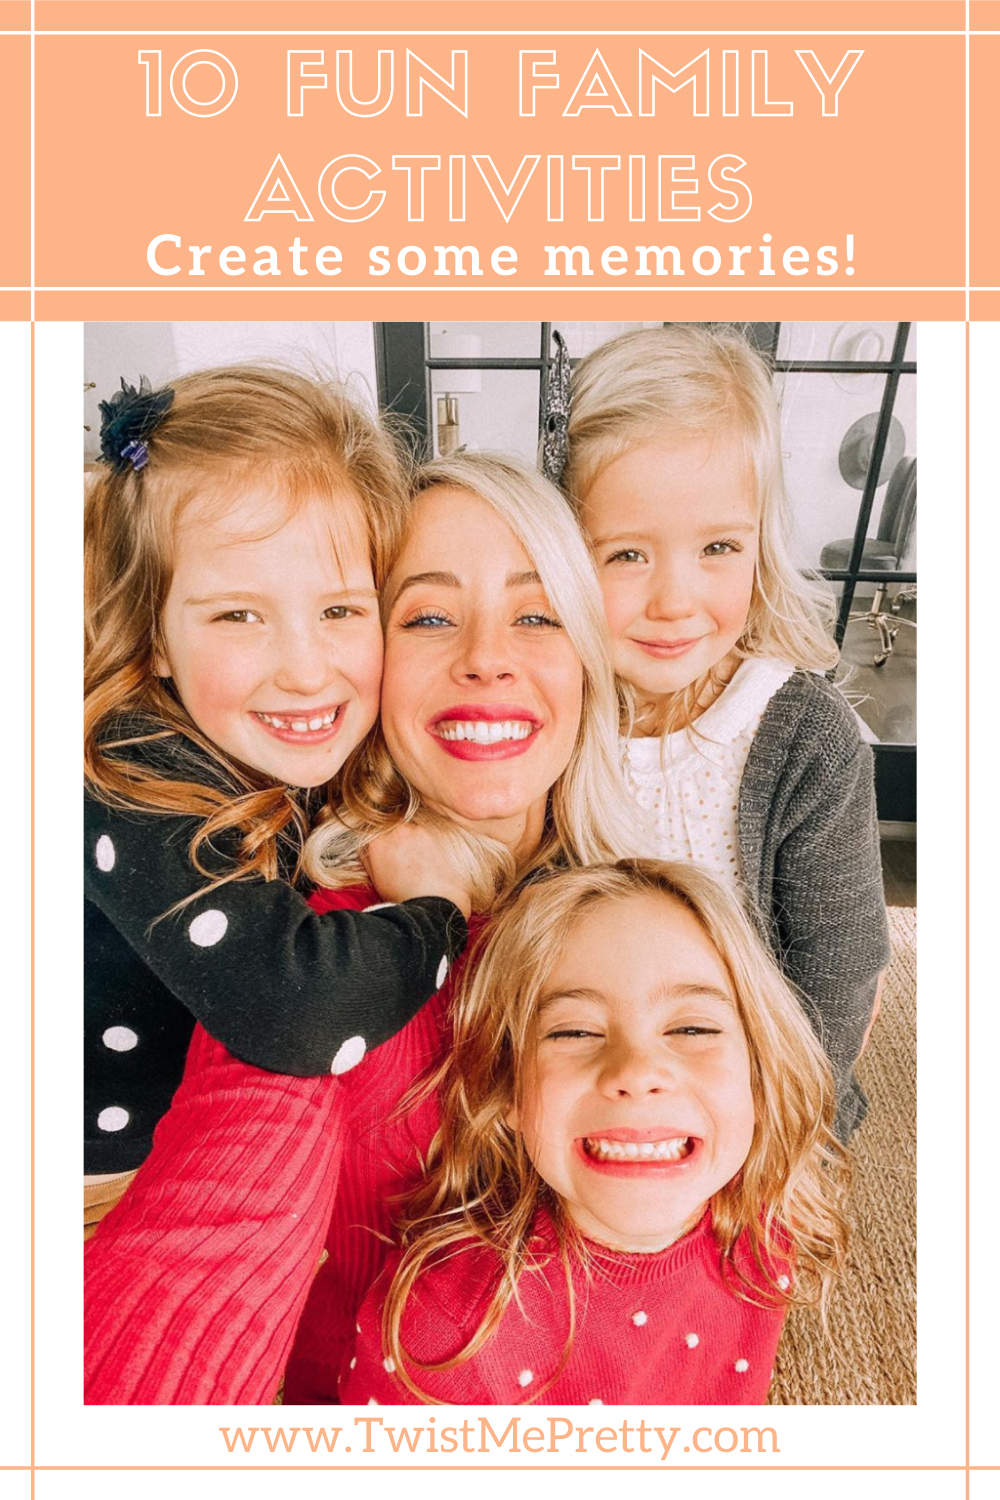 10 Fun Family Activities- Create some memories! www.twistmepretty.com